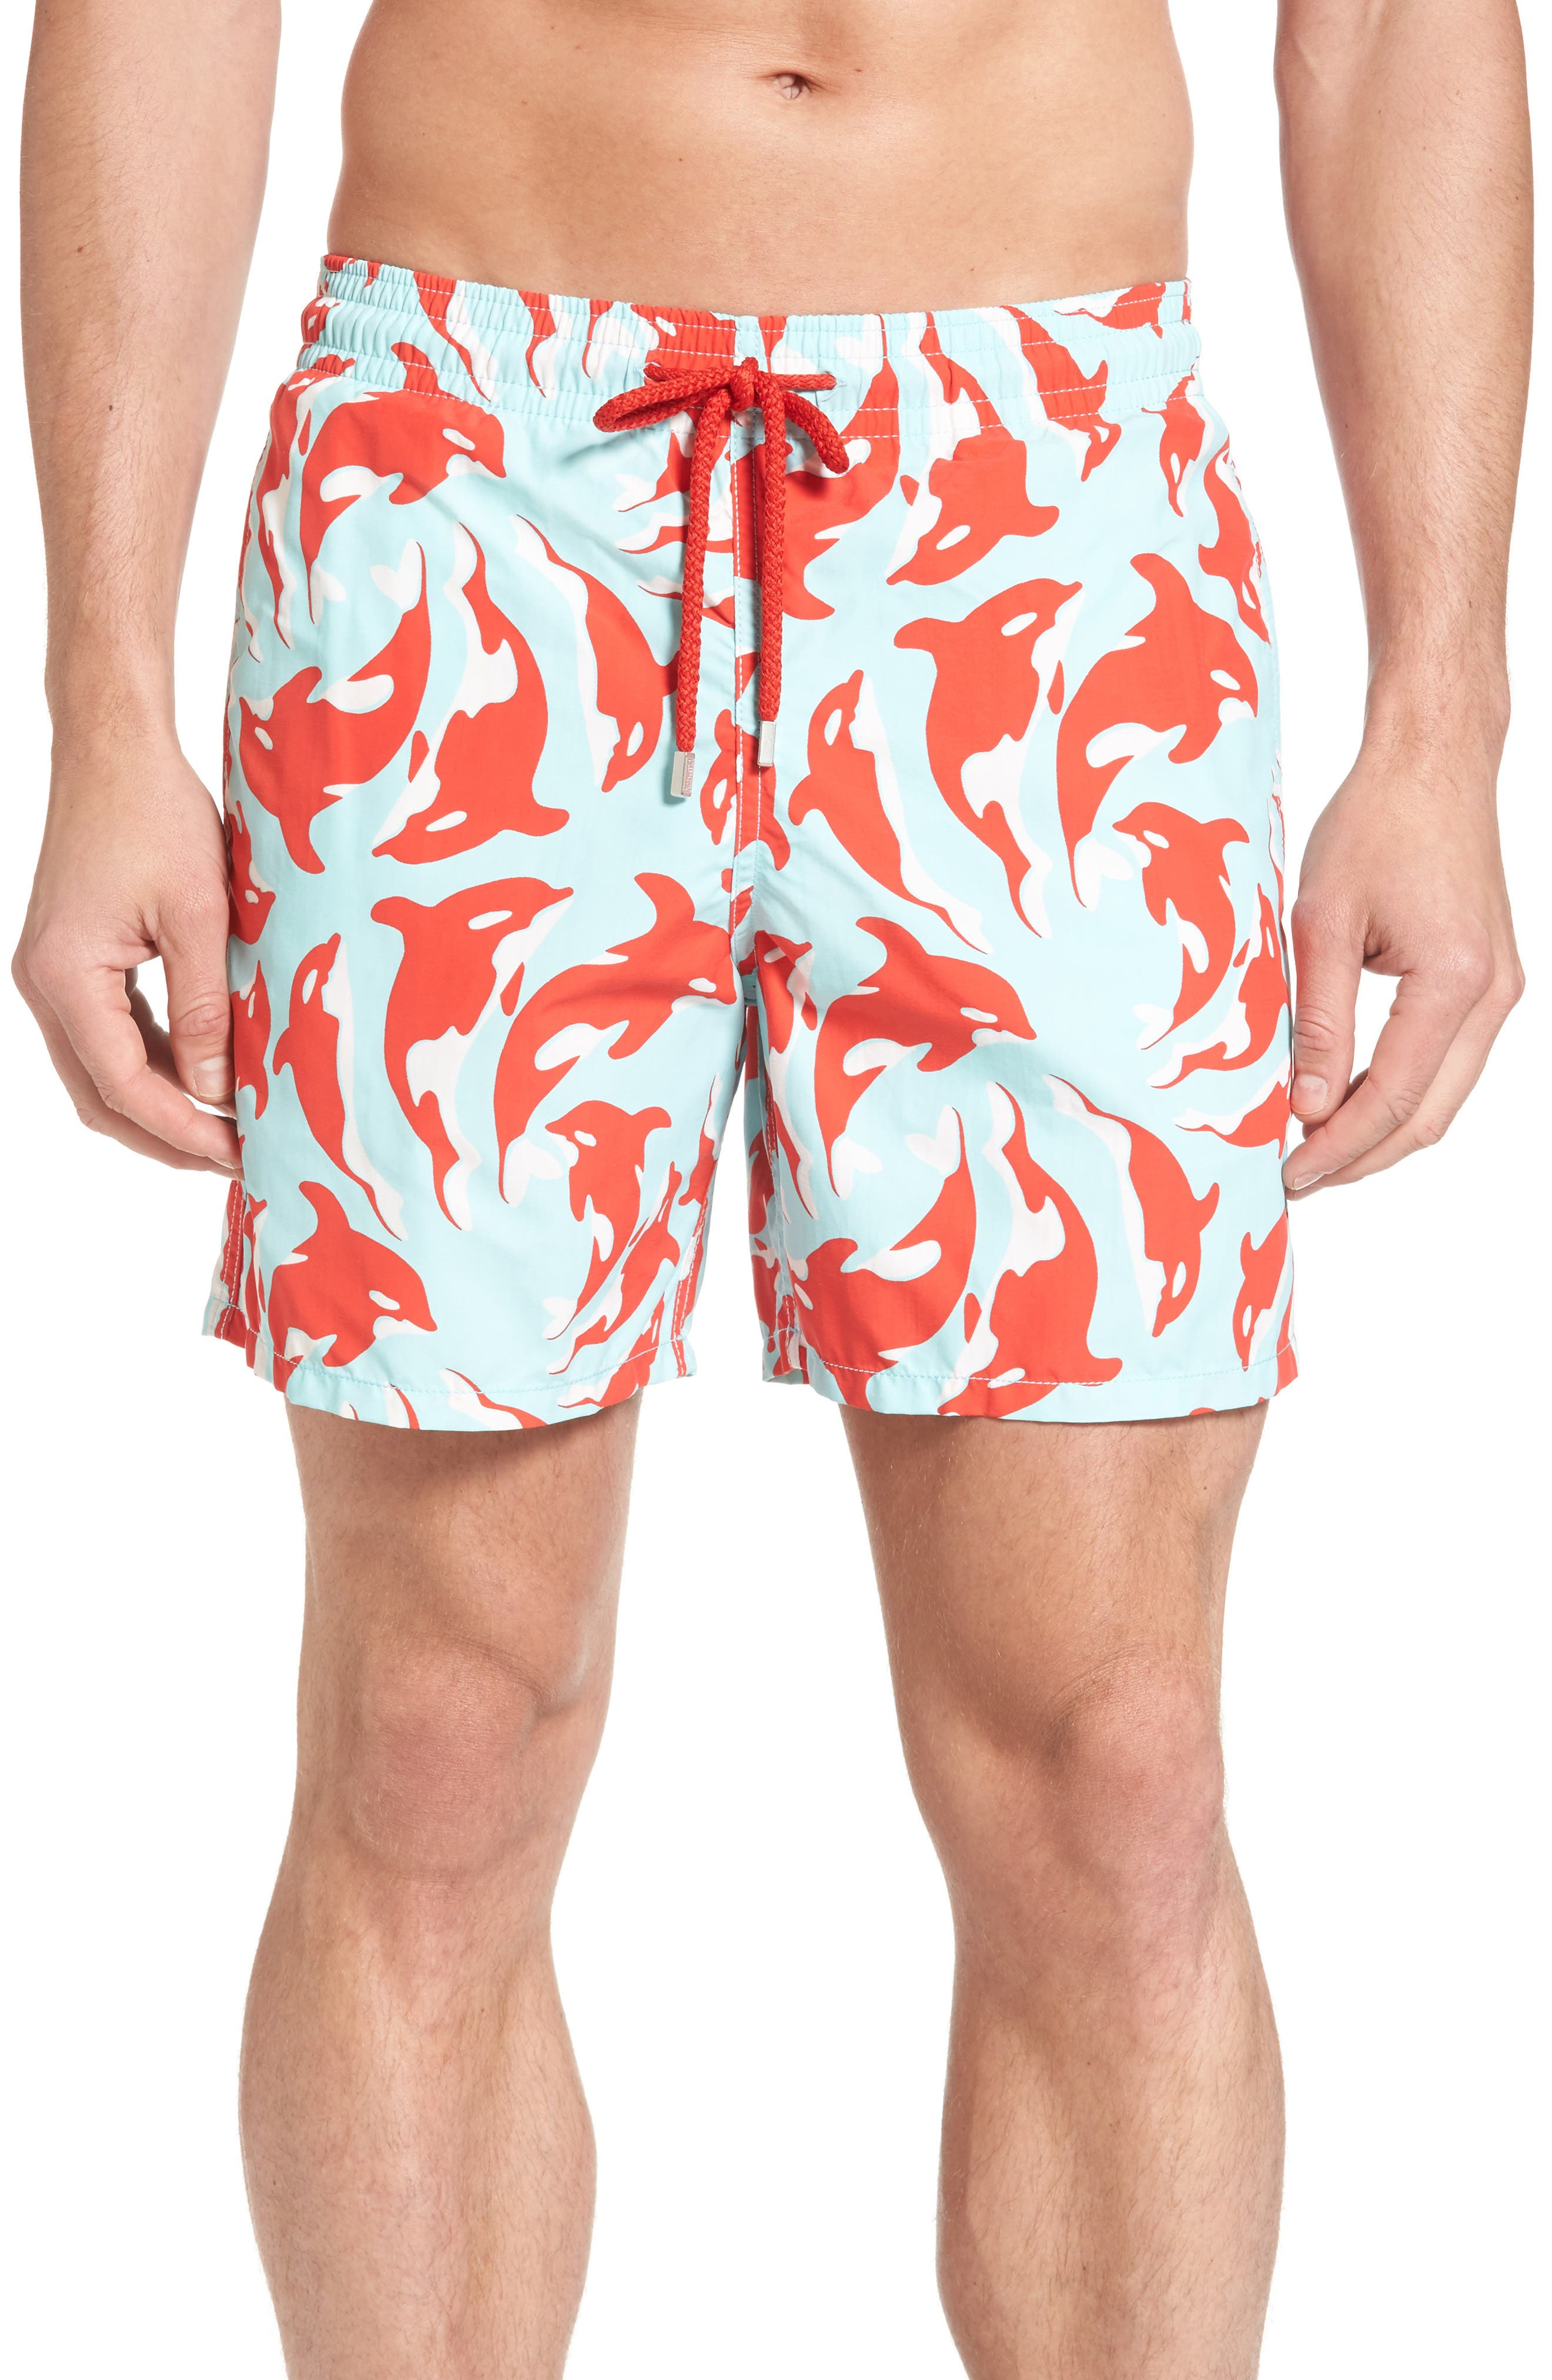 Moorea Galaks Print Swim Trunks,                             Main thumbnail 1, color,                             FROSTED BLUE